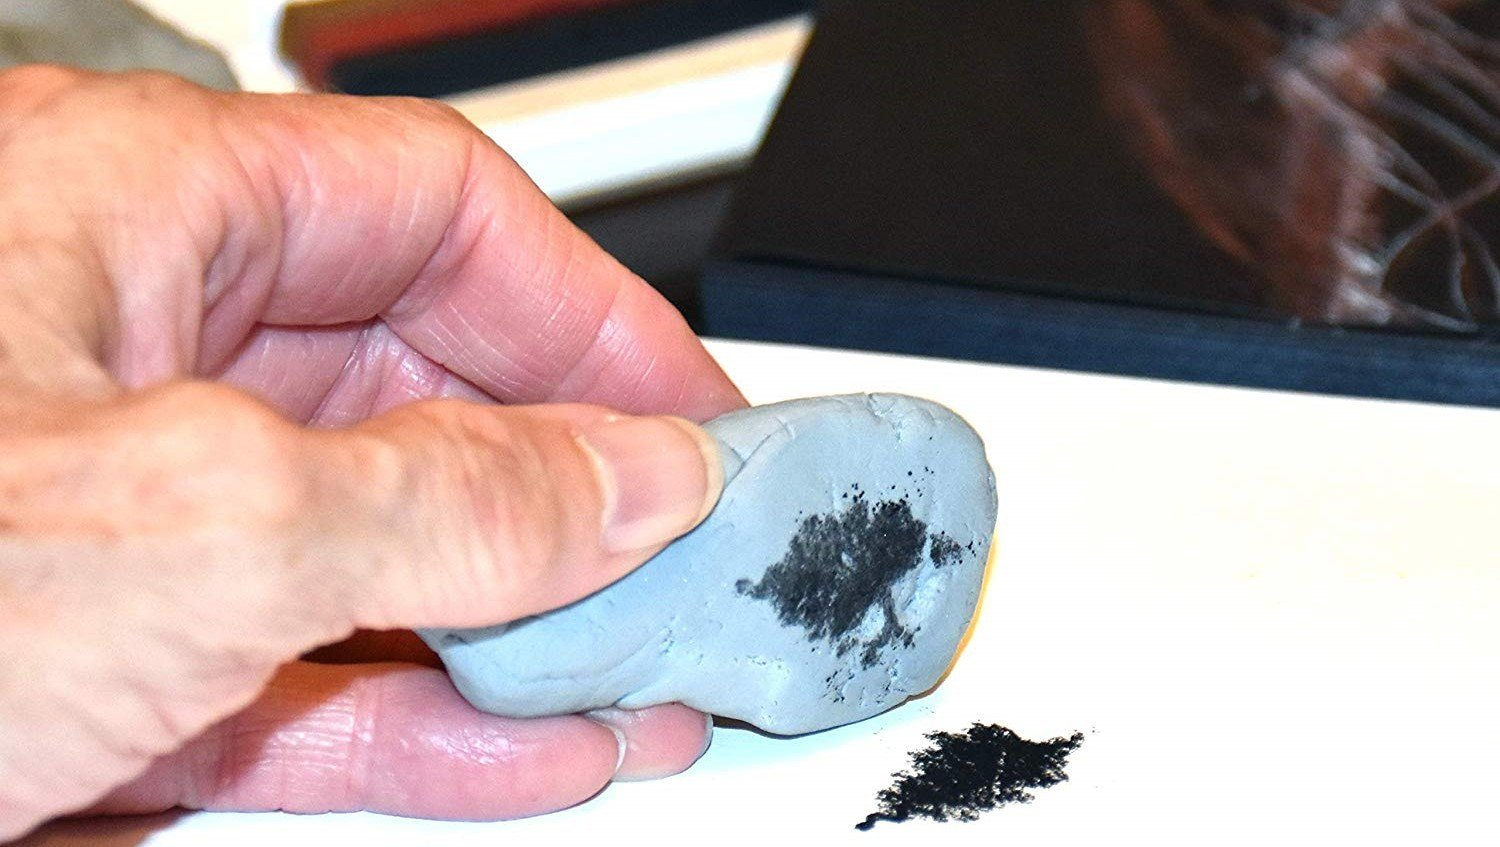 Black patches on kneaded eraser